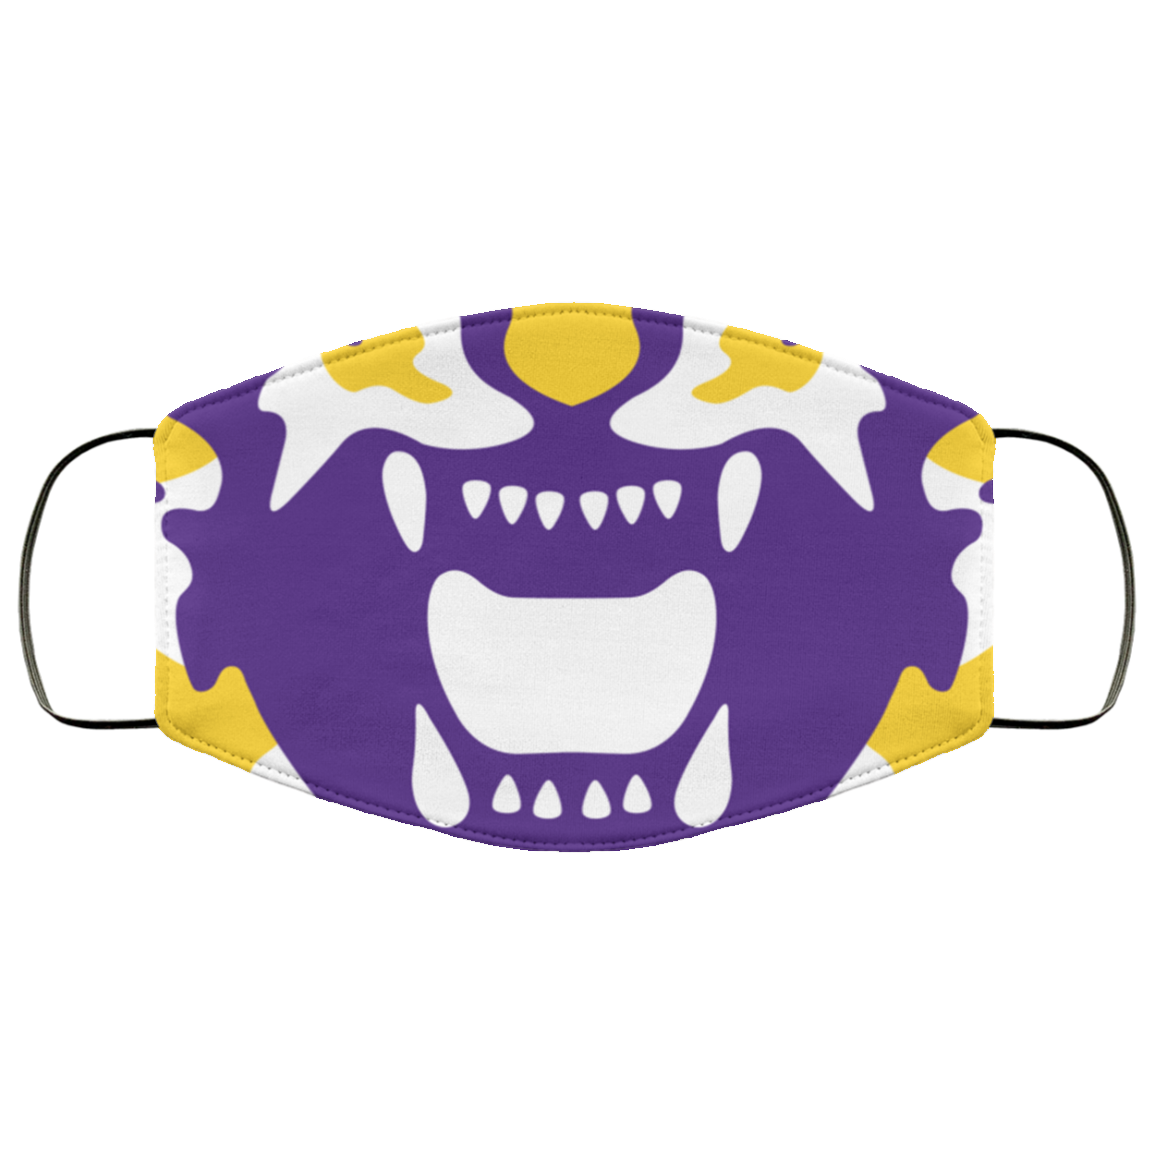 LSU Tigers face mask